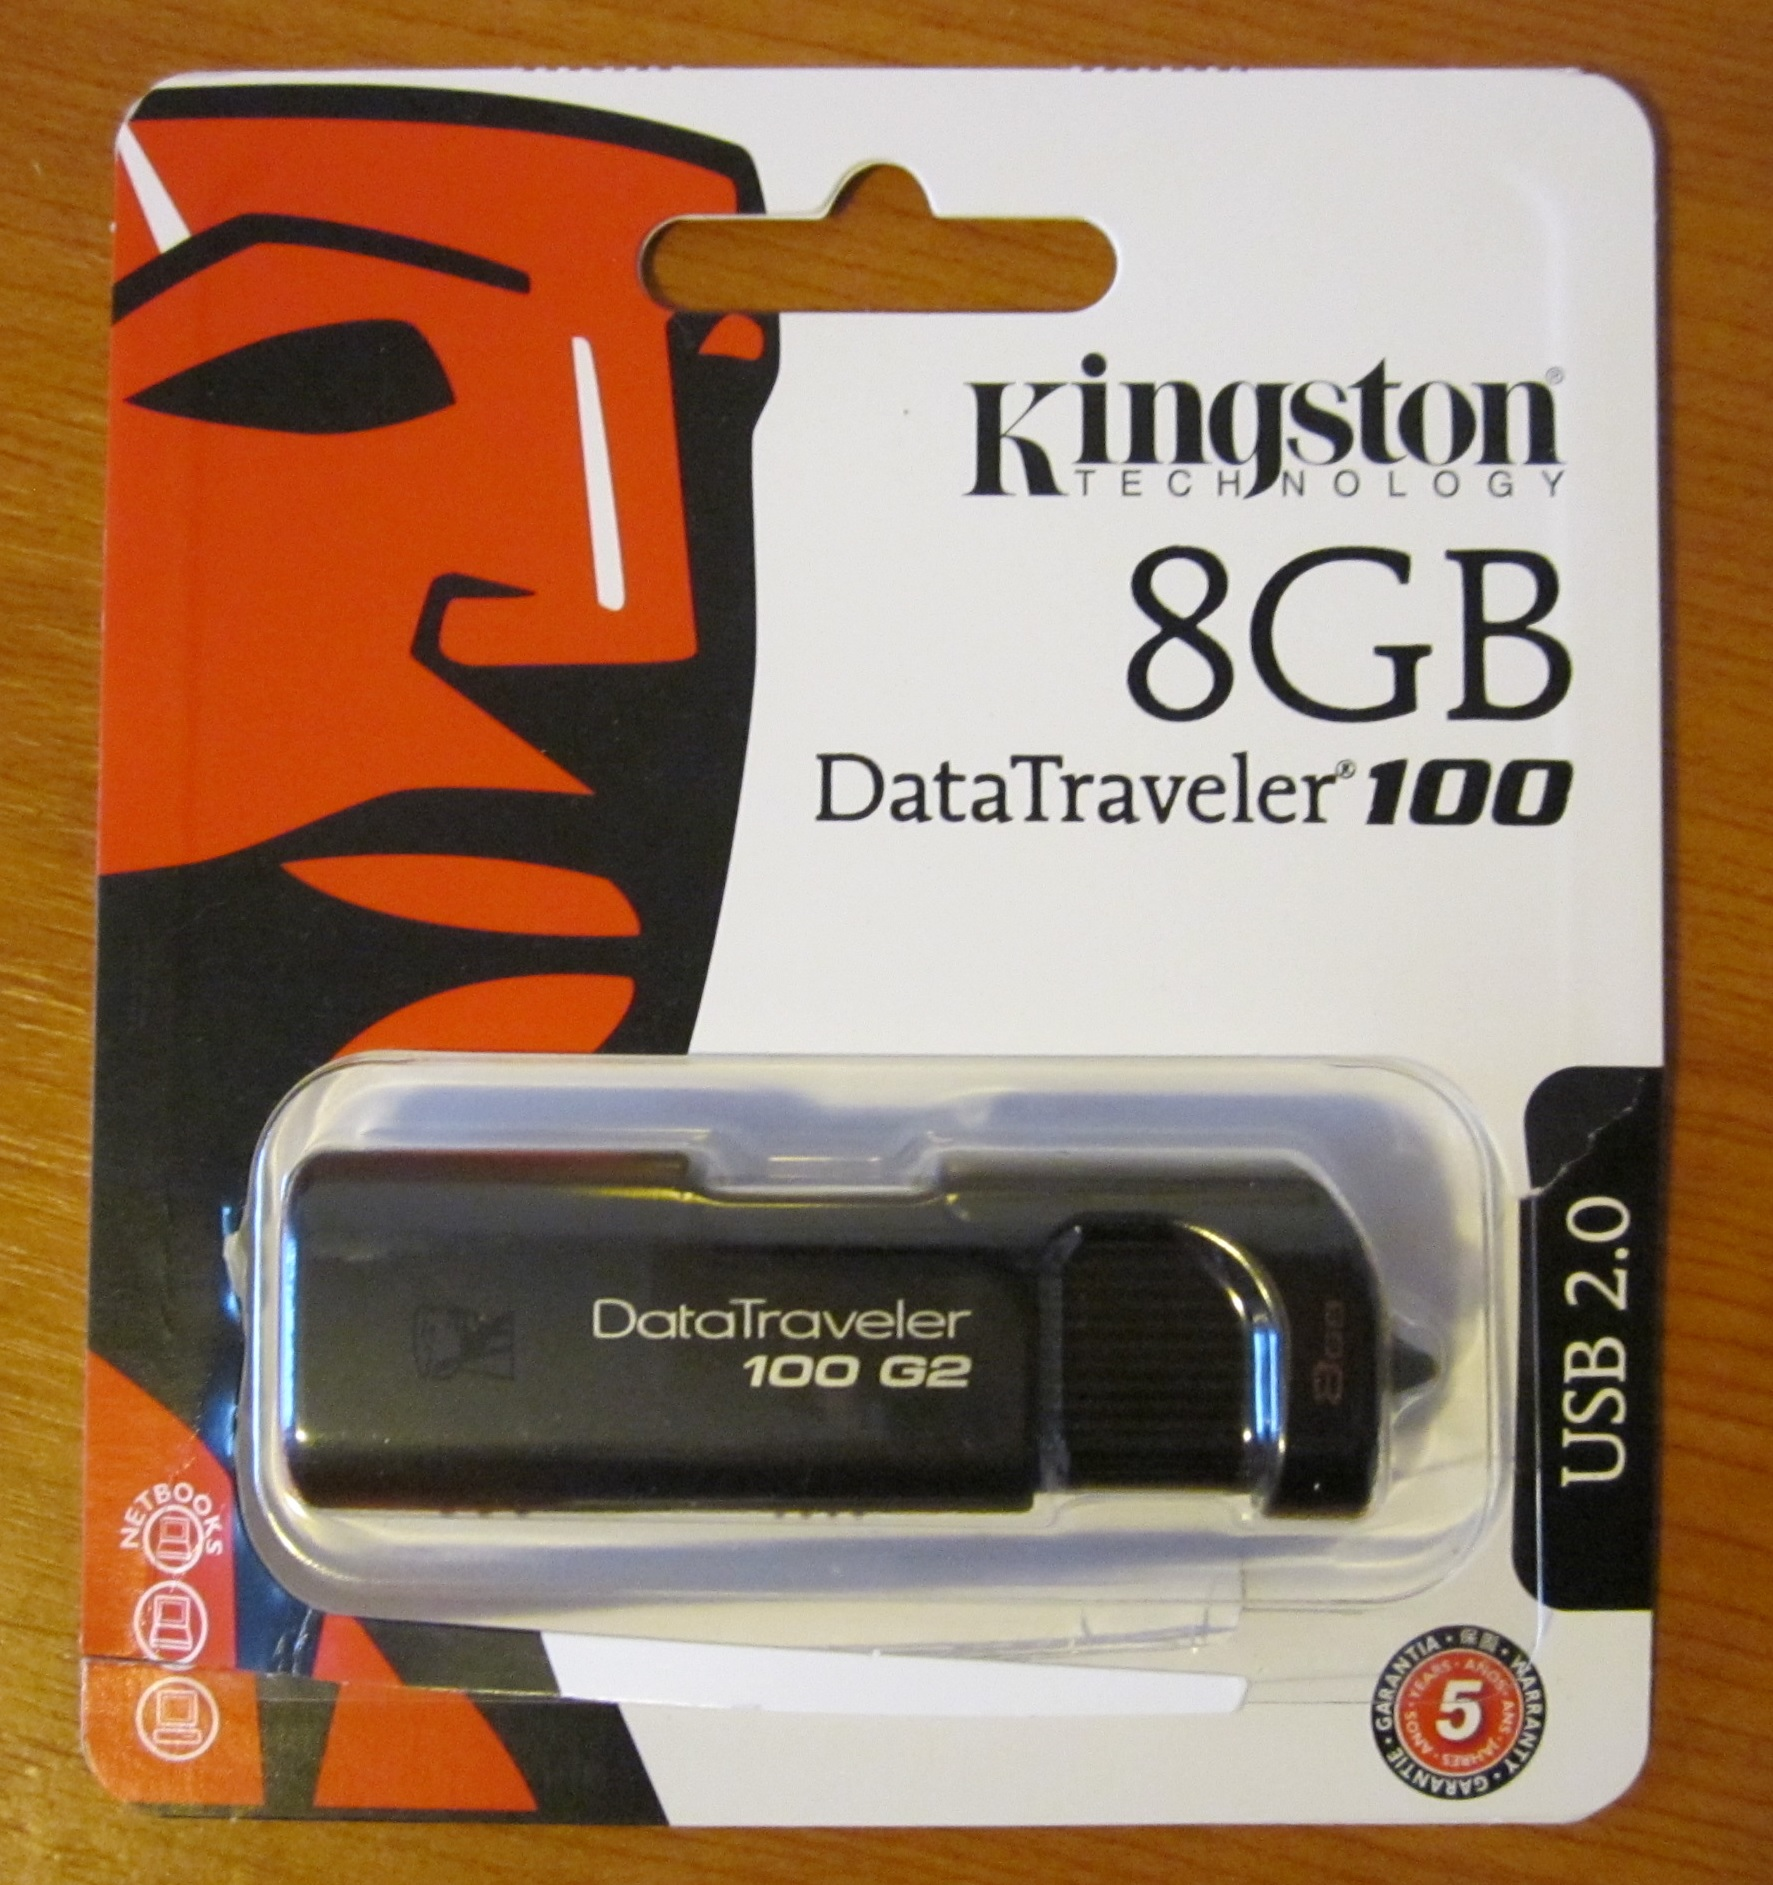 Prezentare și testare stick USB Kingston Data Traveler 100 G2